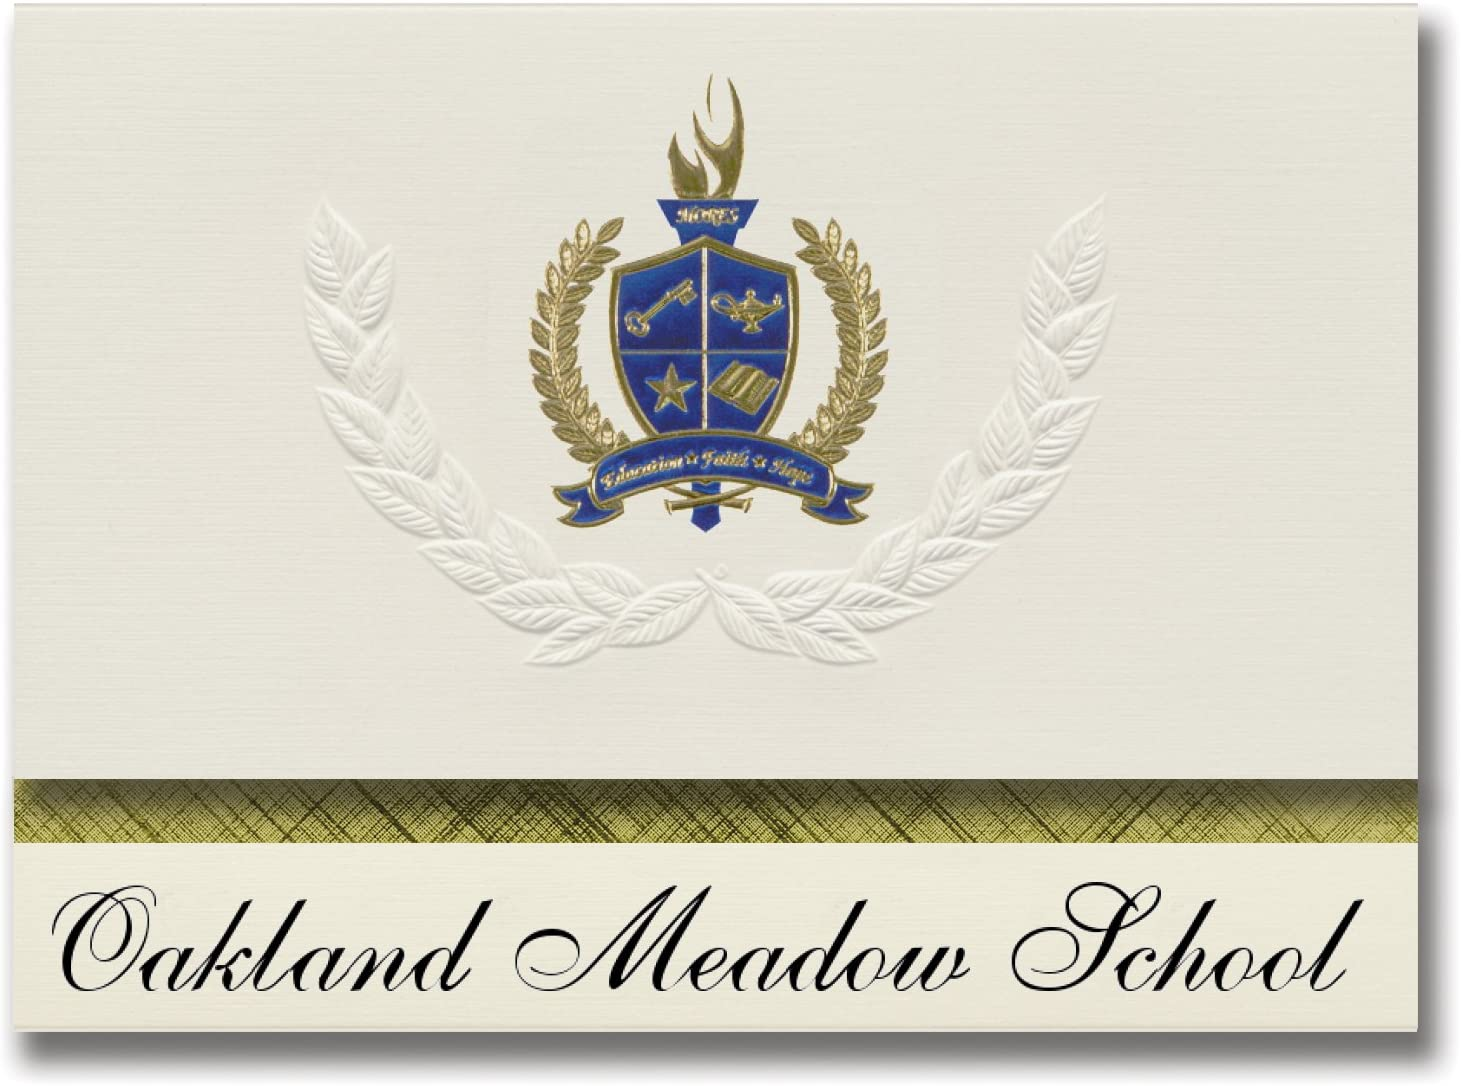 Signature Announcements Oakland Meadow School (Lawrenceville, GA) Graduation Announcements, Presidential style, Elite package of 25 with Gold & Blue Metallic Foil seal